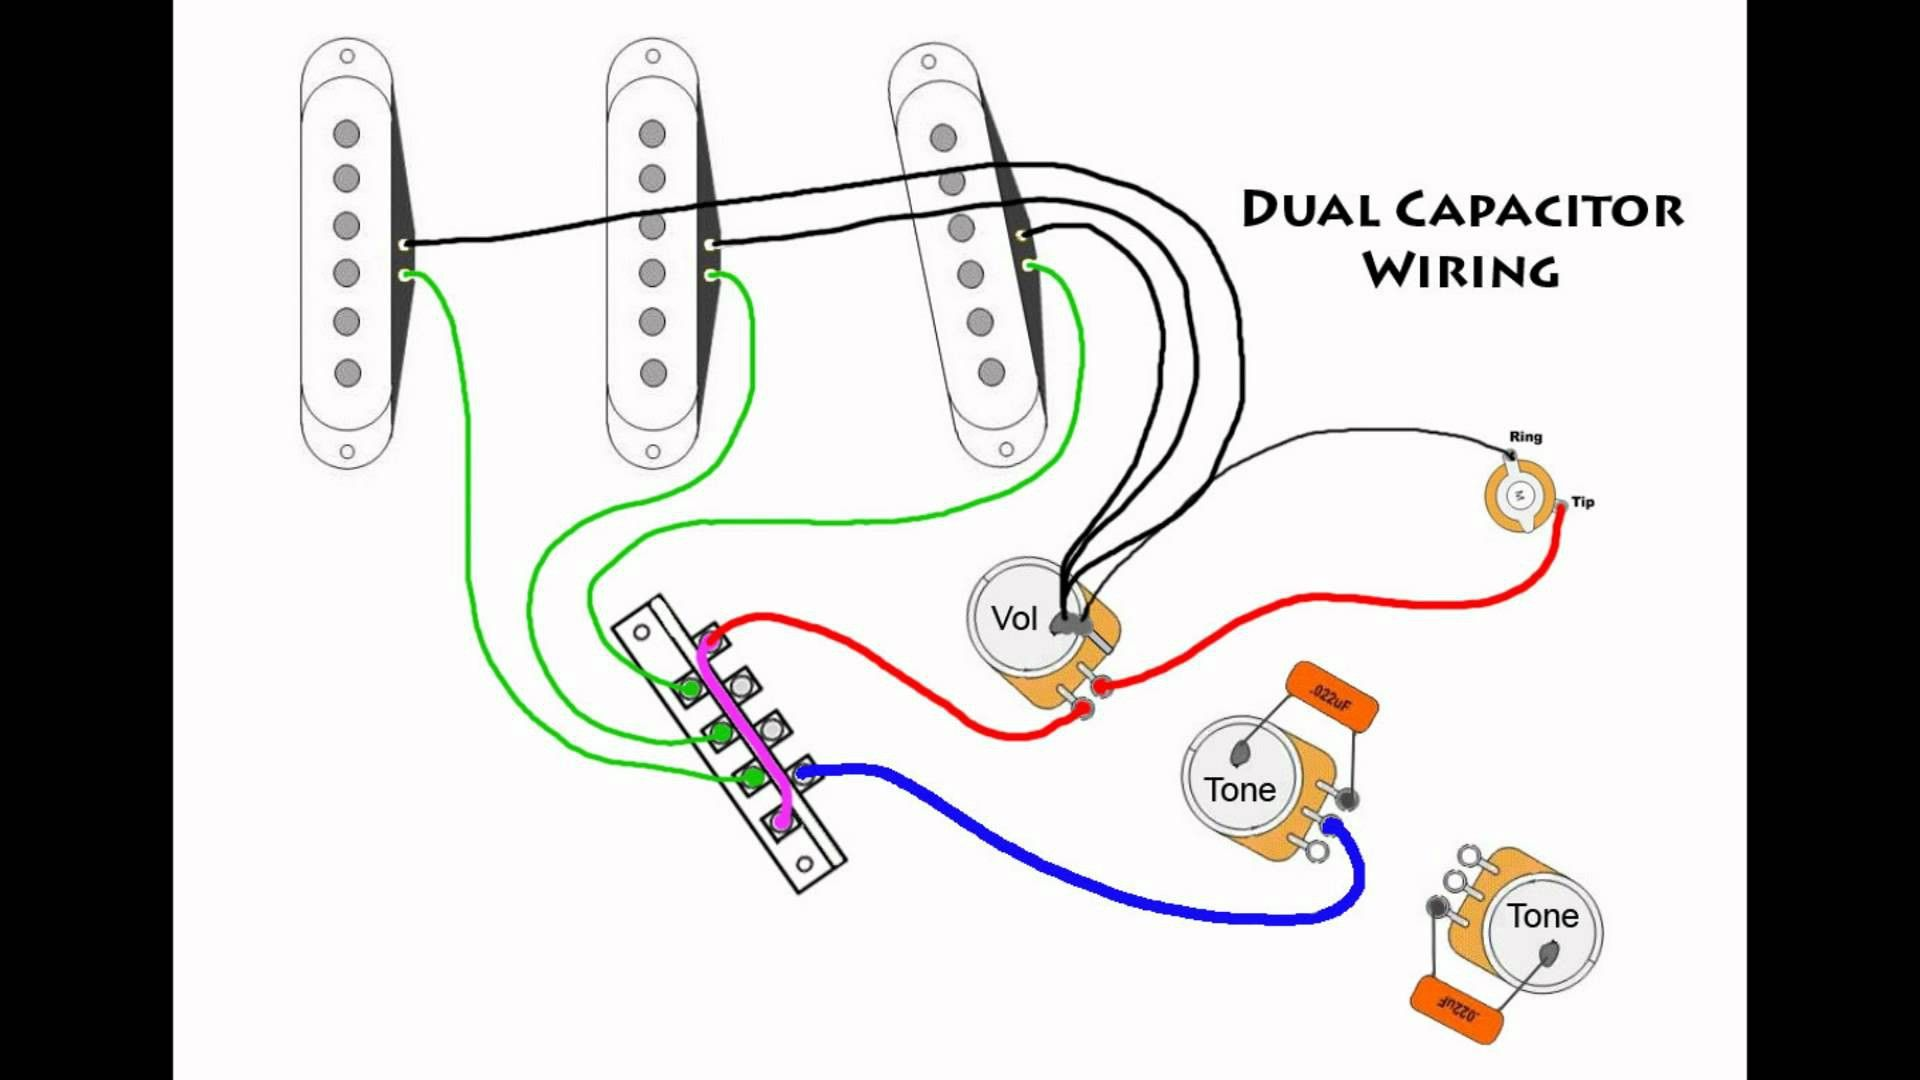 Fender Stratocaster Wiring Diagram Best Of Strat Throughout Diagrams Stratocaster Guitar Guitar Fender Stratocaster